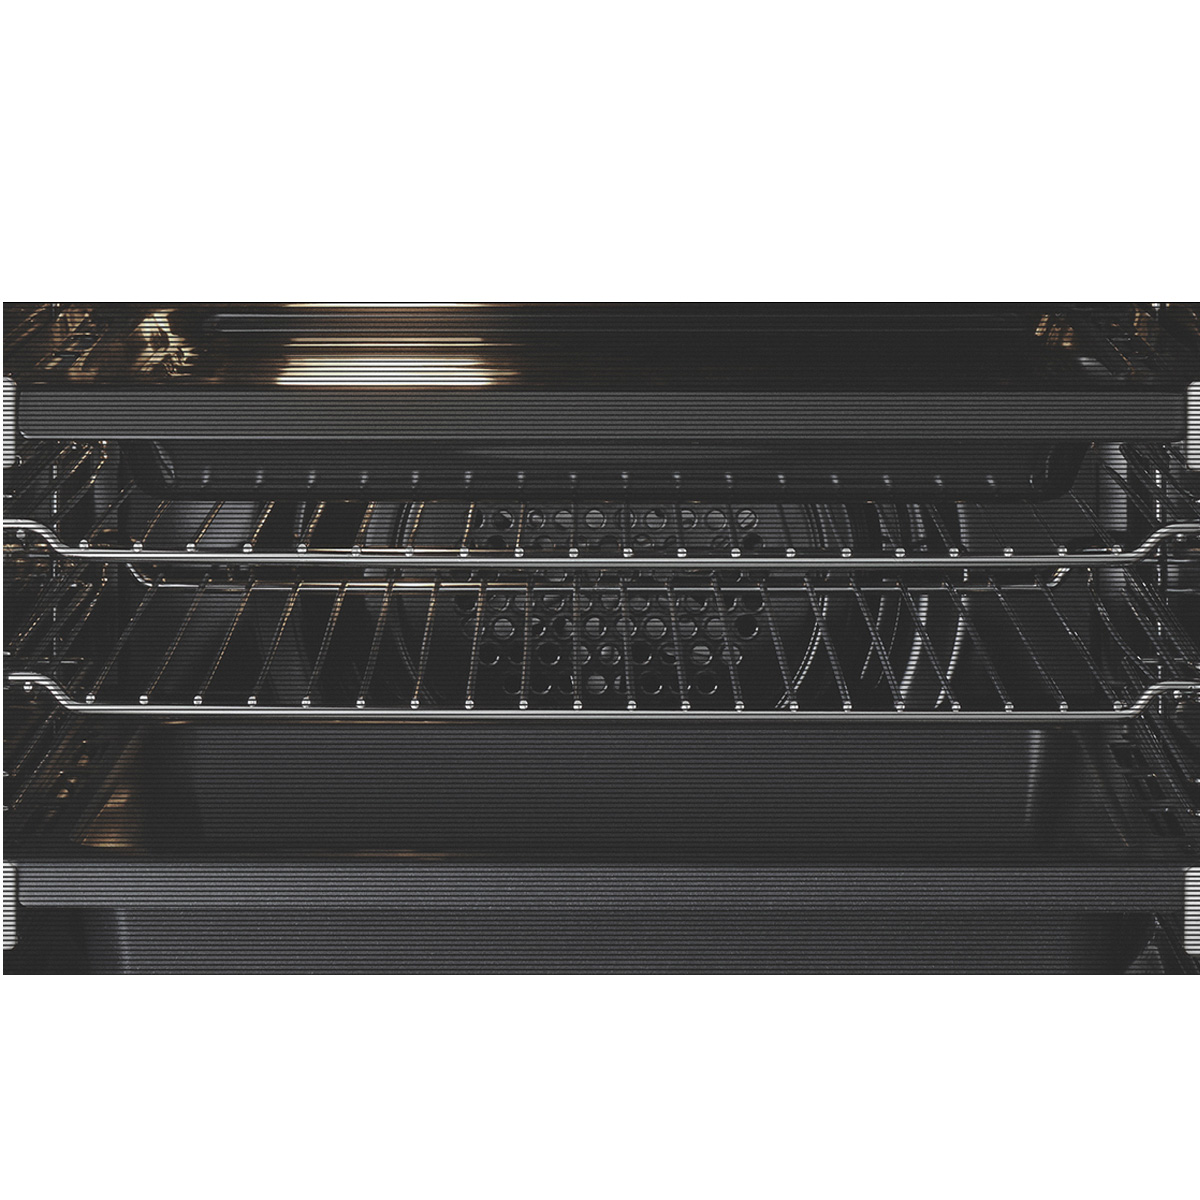 Electrolux EVEP616SC Pyrolytic Electric Wall Oven 39782